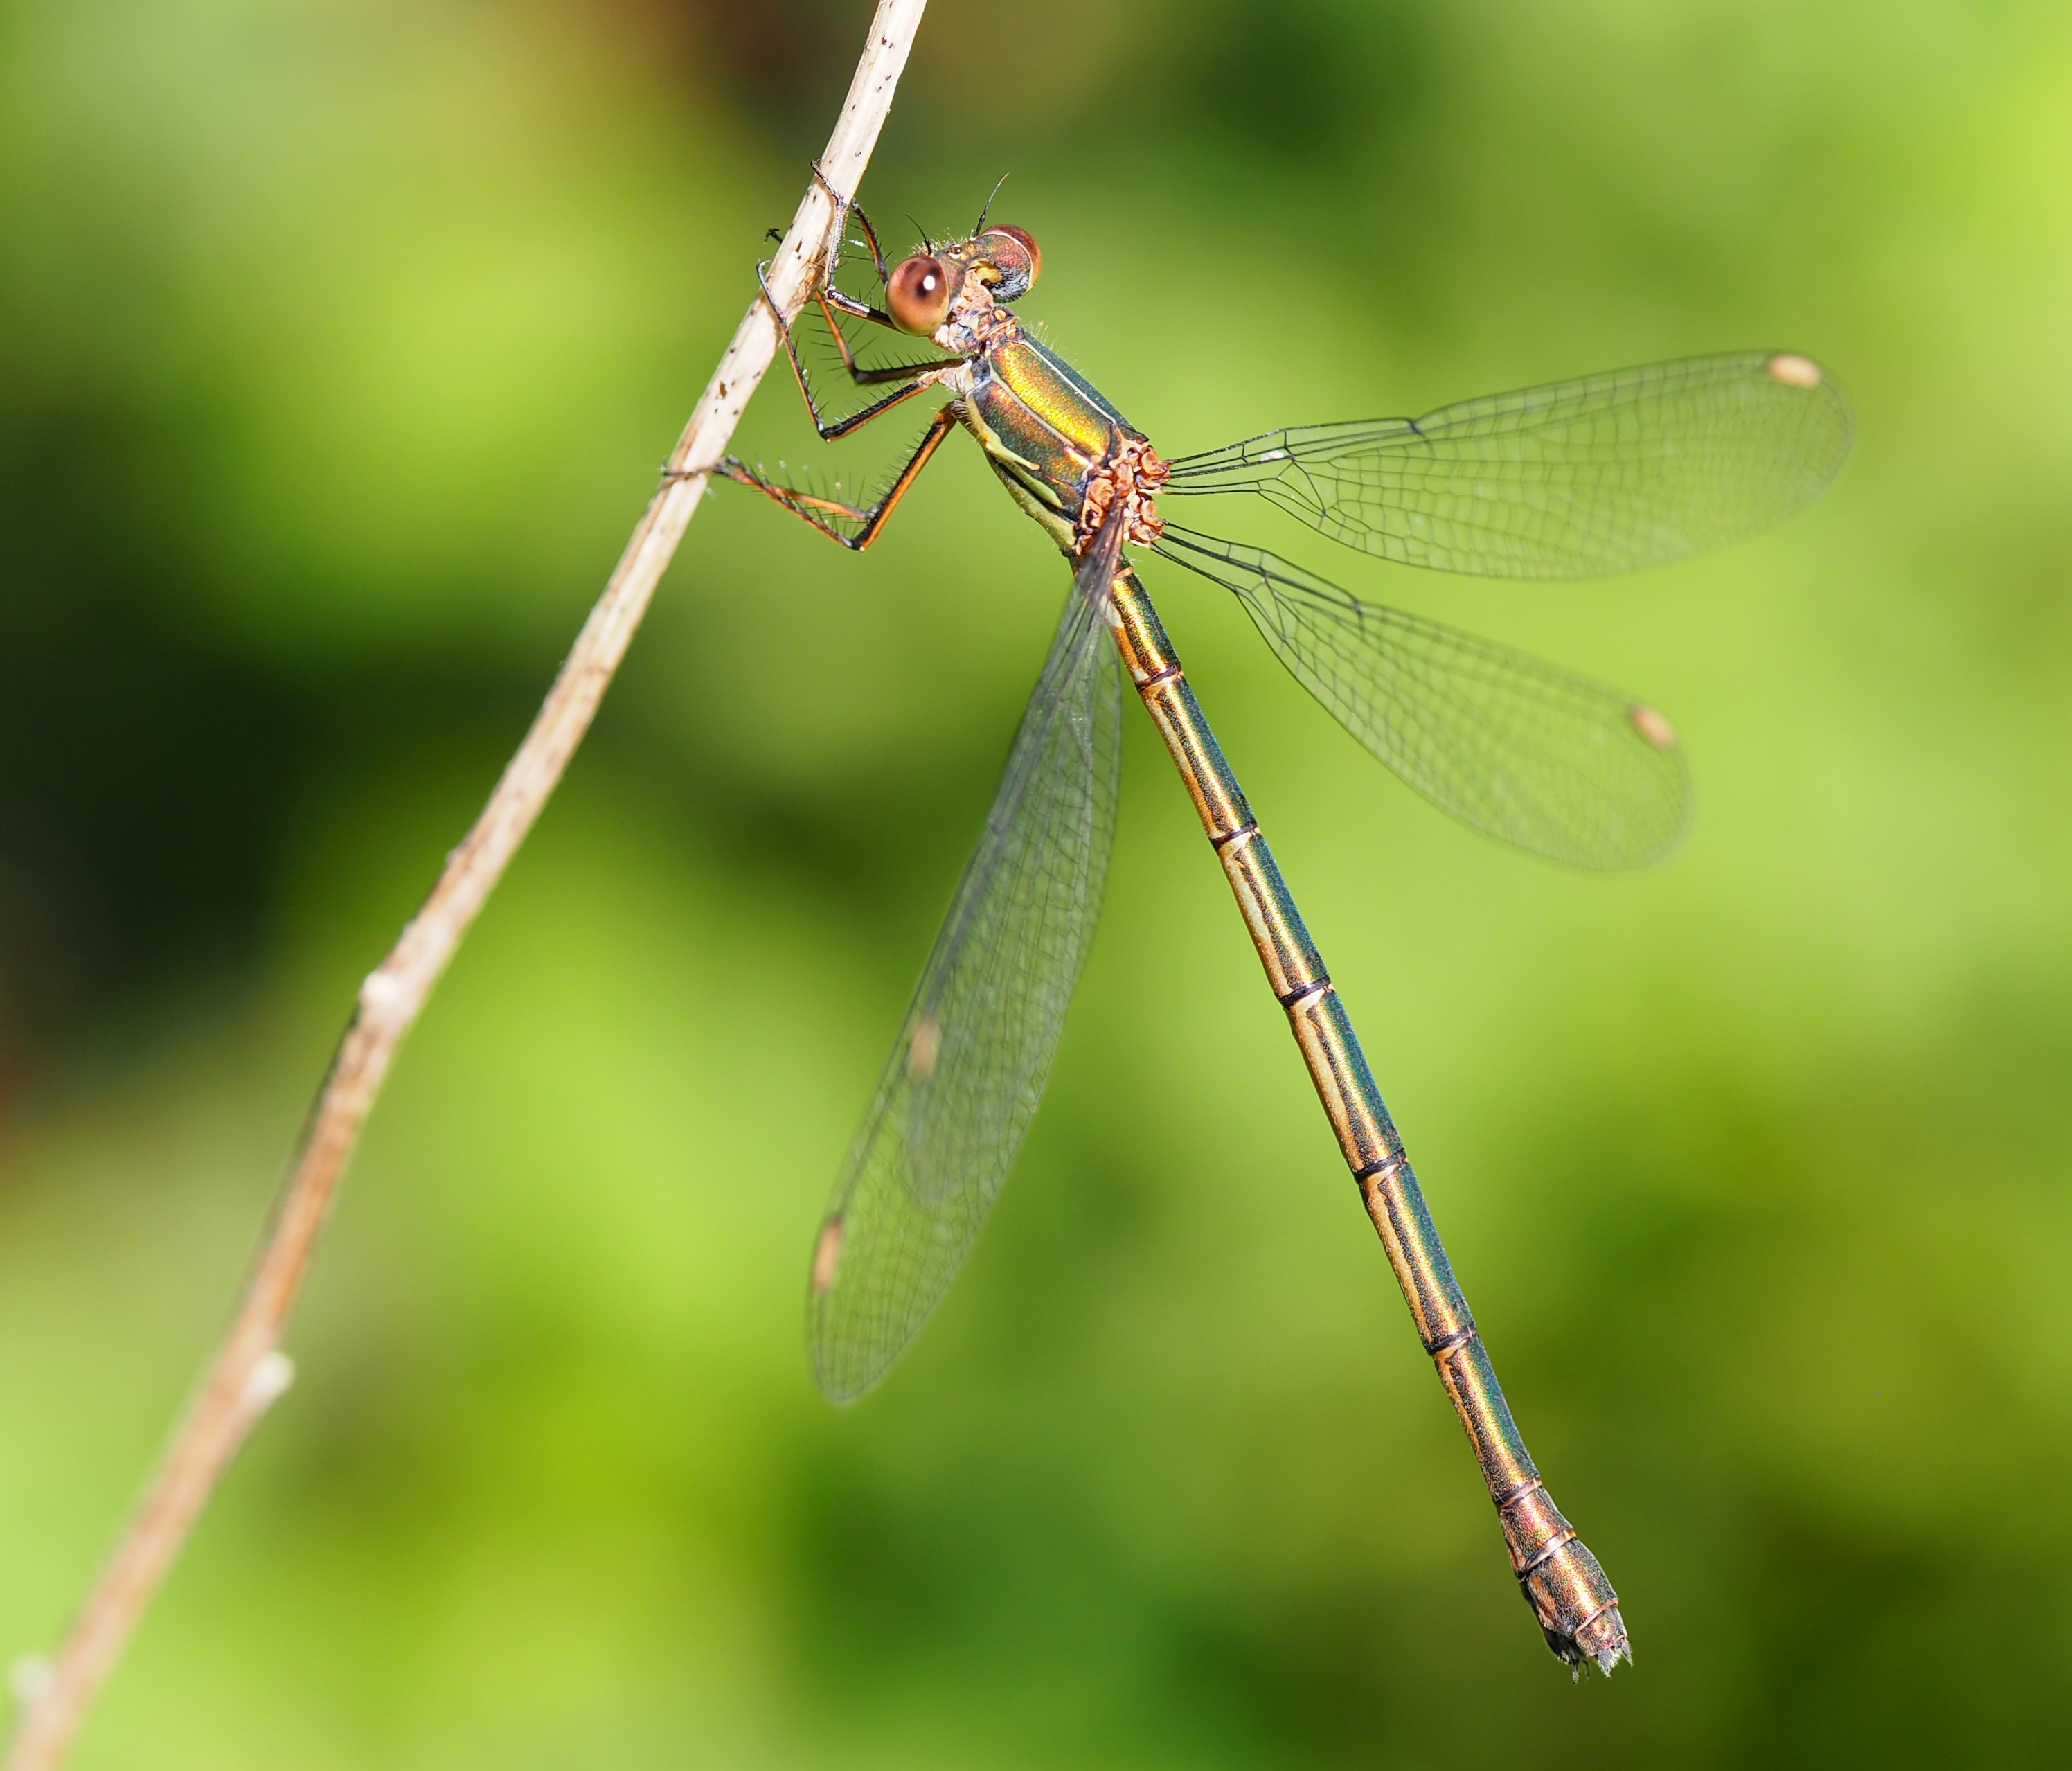 Damselfly in Neerijse